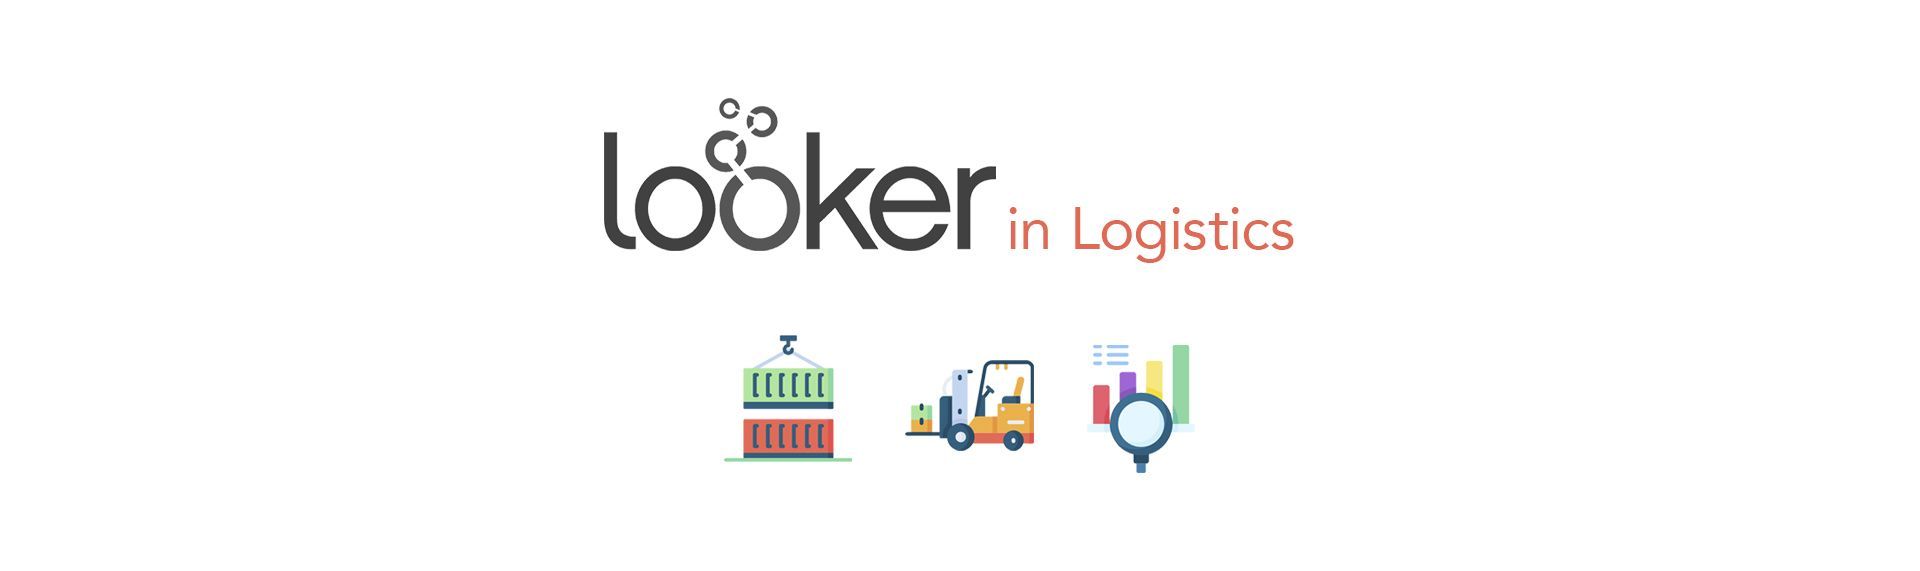 Looker in Logistics